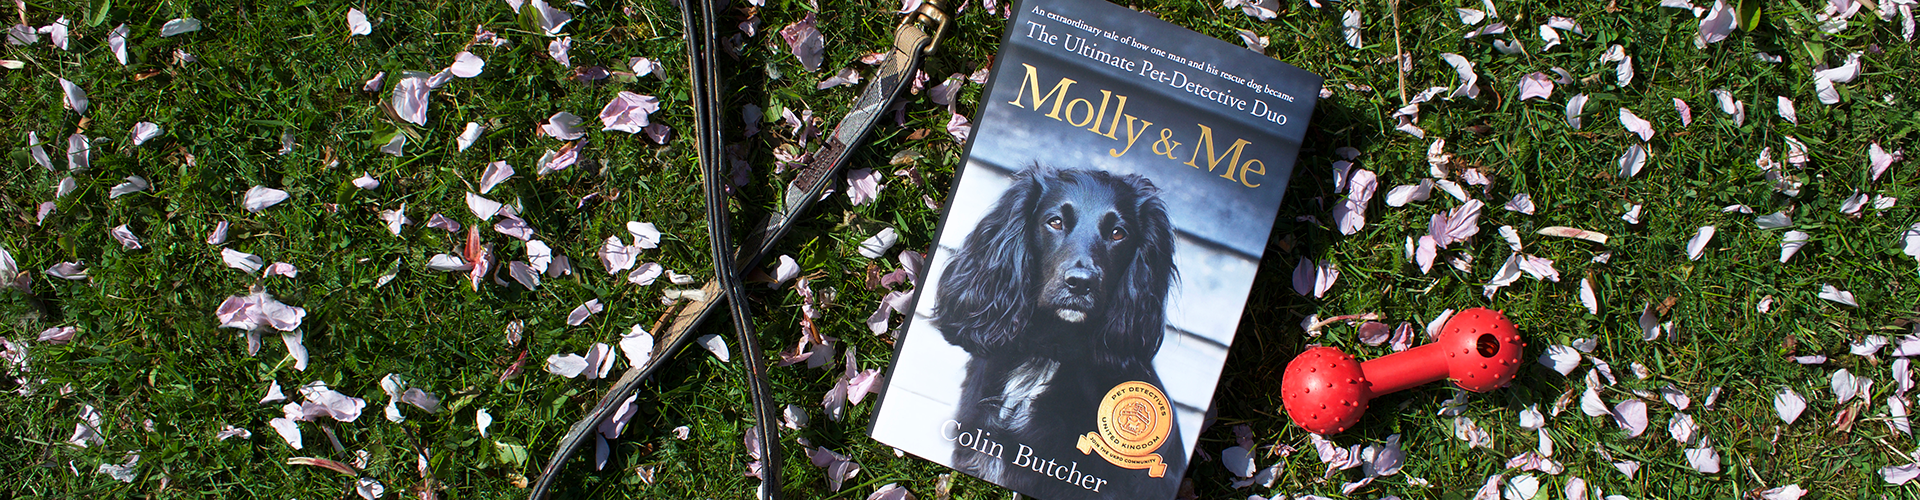 Win a Signed Copy of Molly and Me by Colin Butcher